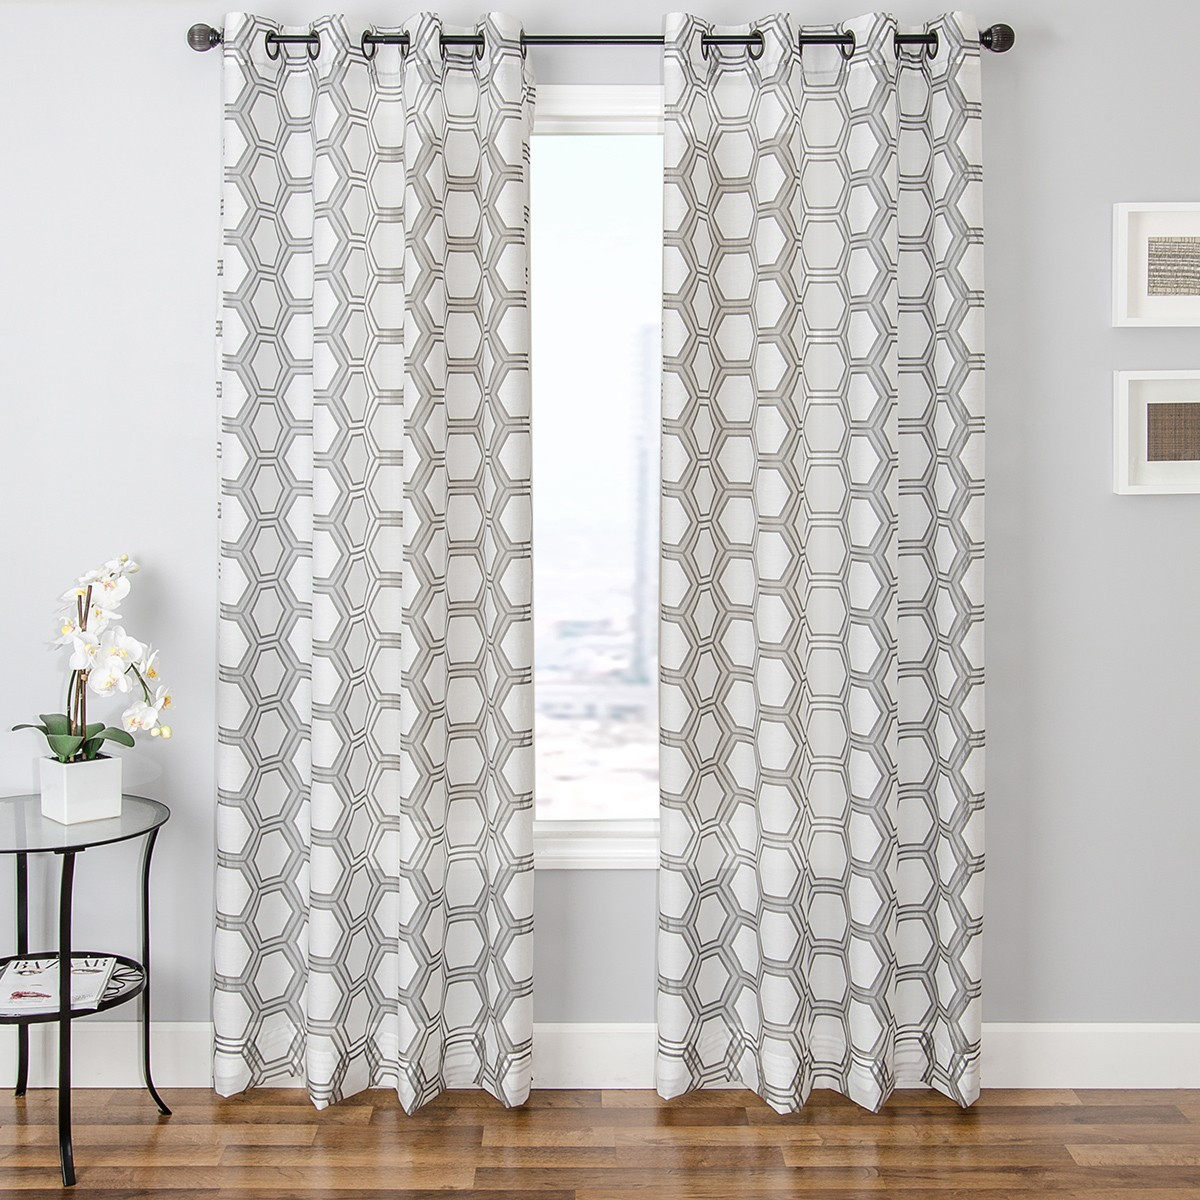 White Patterned Curtains HomesFeed : Silver White Patterned Curtains On Grey Wall from homesfeed.com size 1200 x 1200 jpeg 349kB